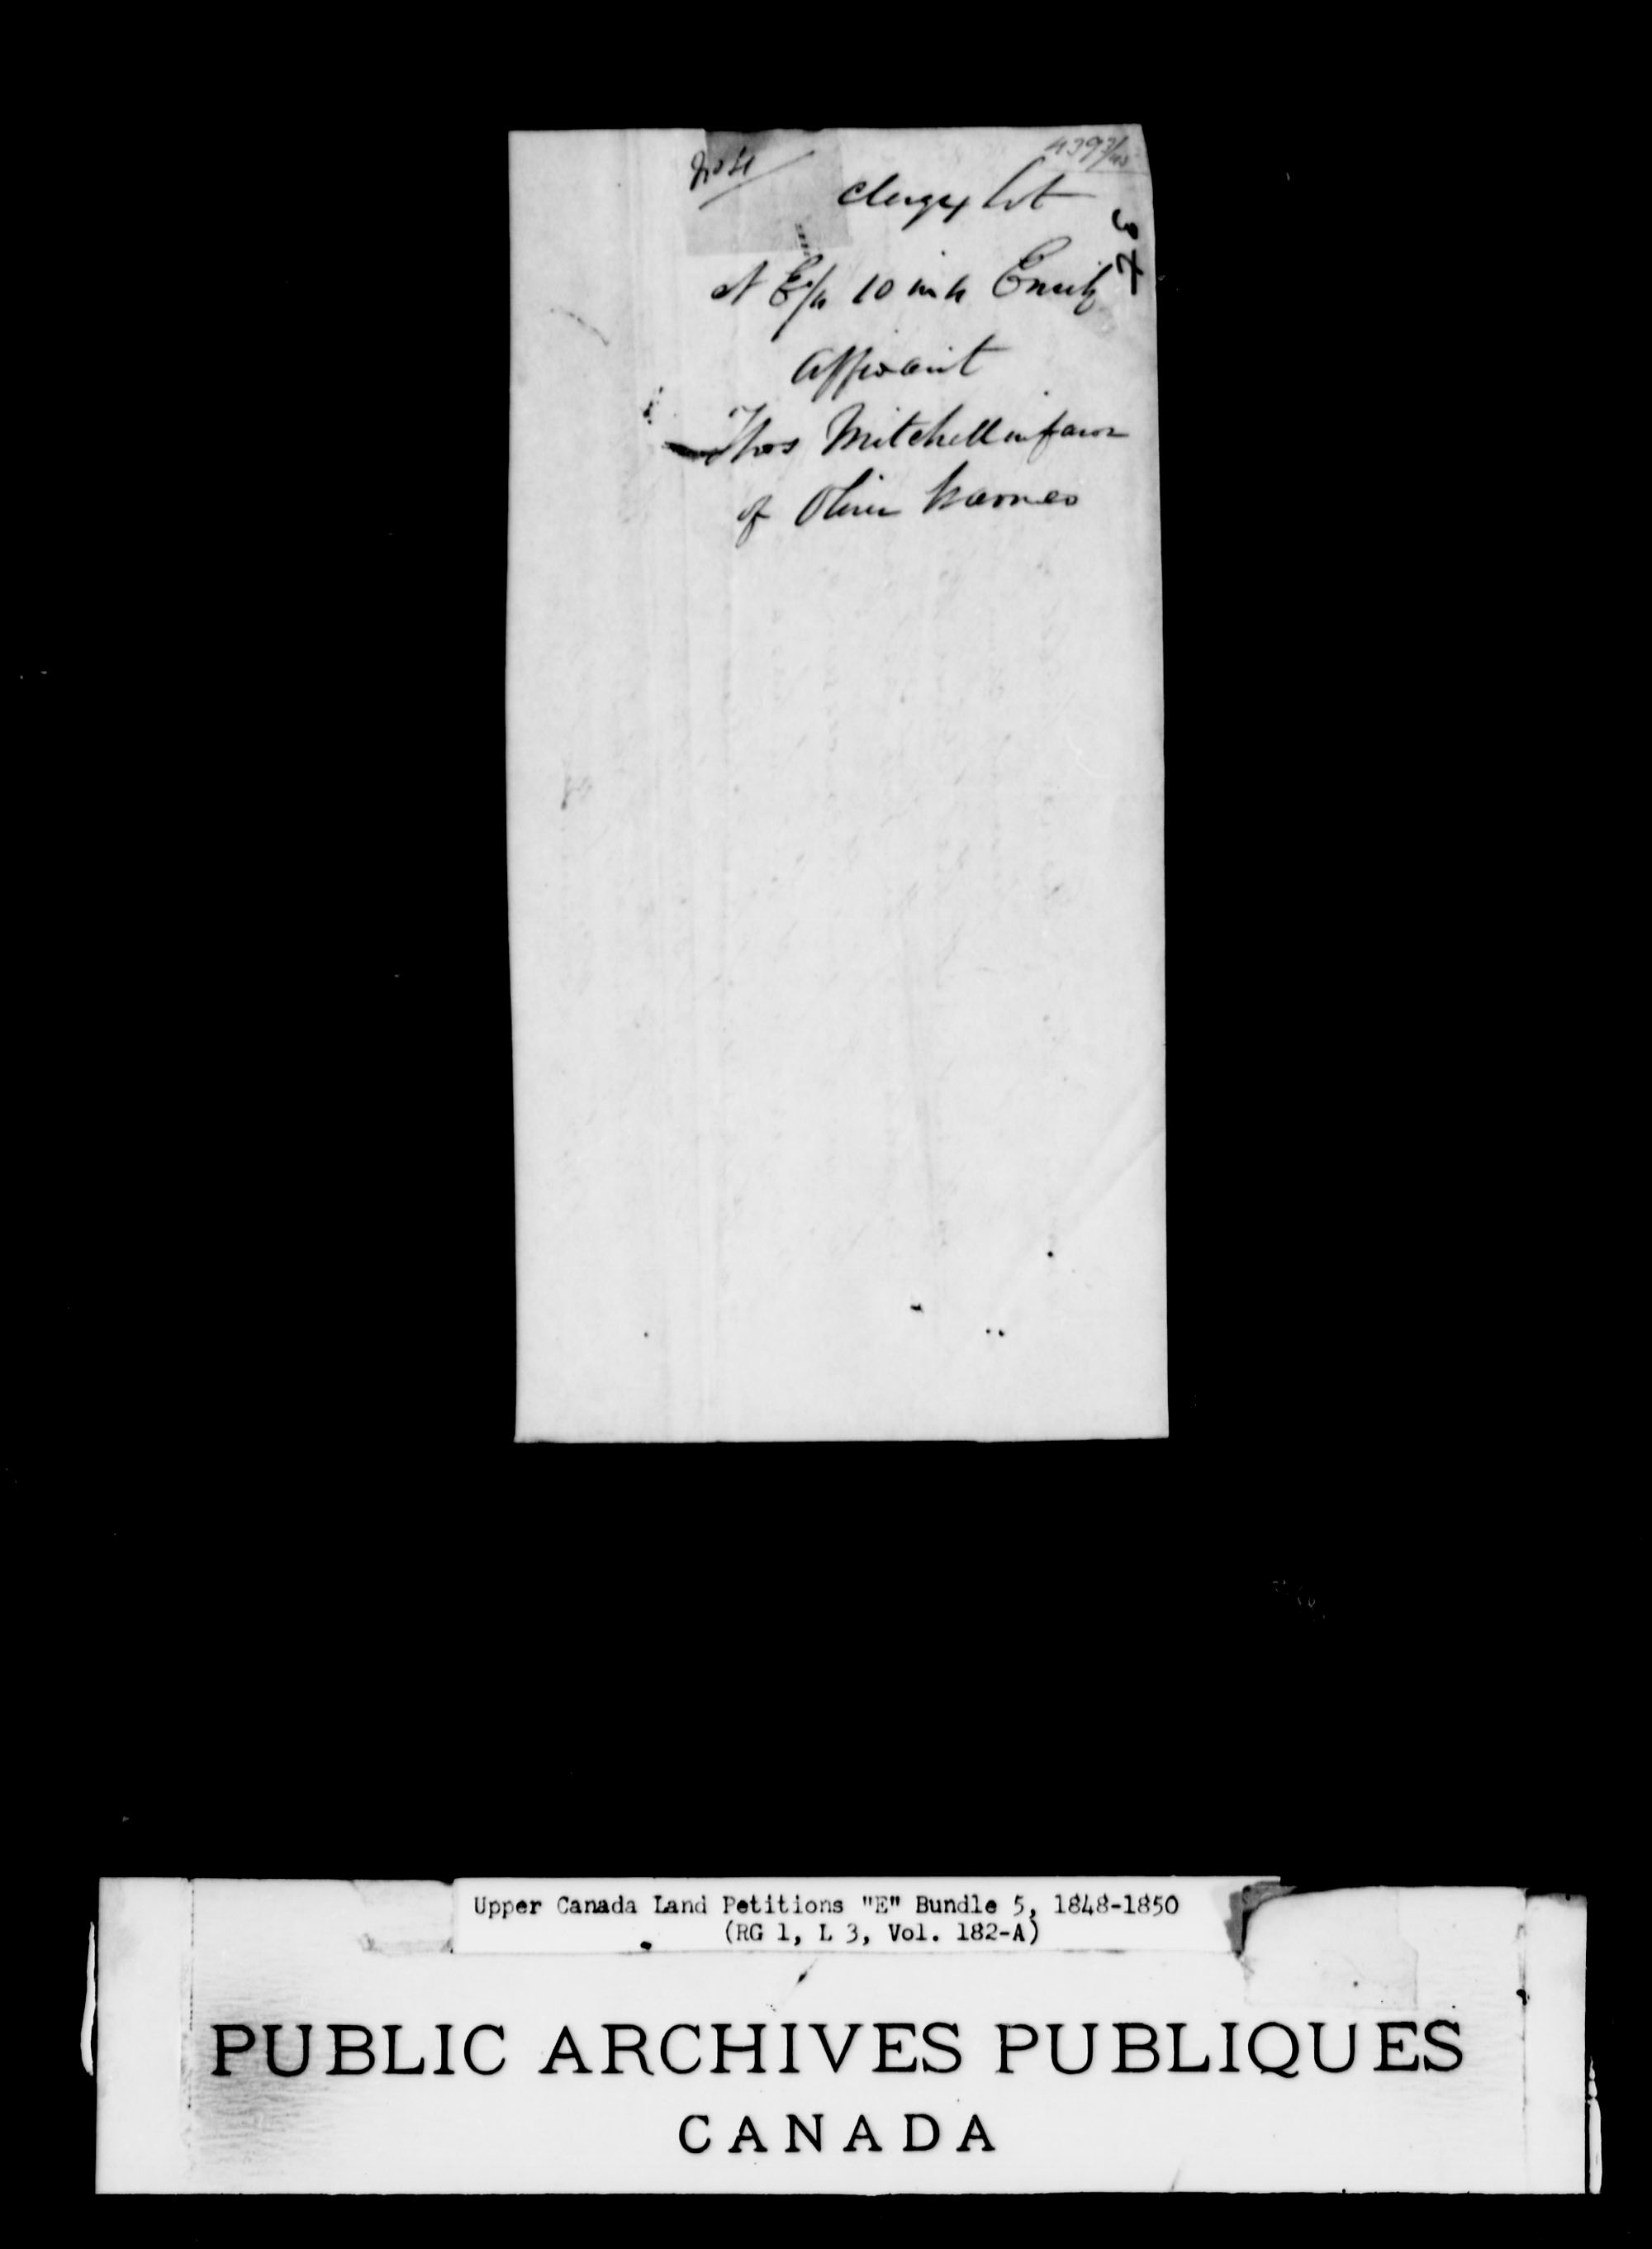 Title: Upper Canada Land Petitions (1763-1865) - Mikan Number: 205131 - Microform: c-1891